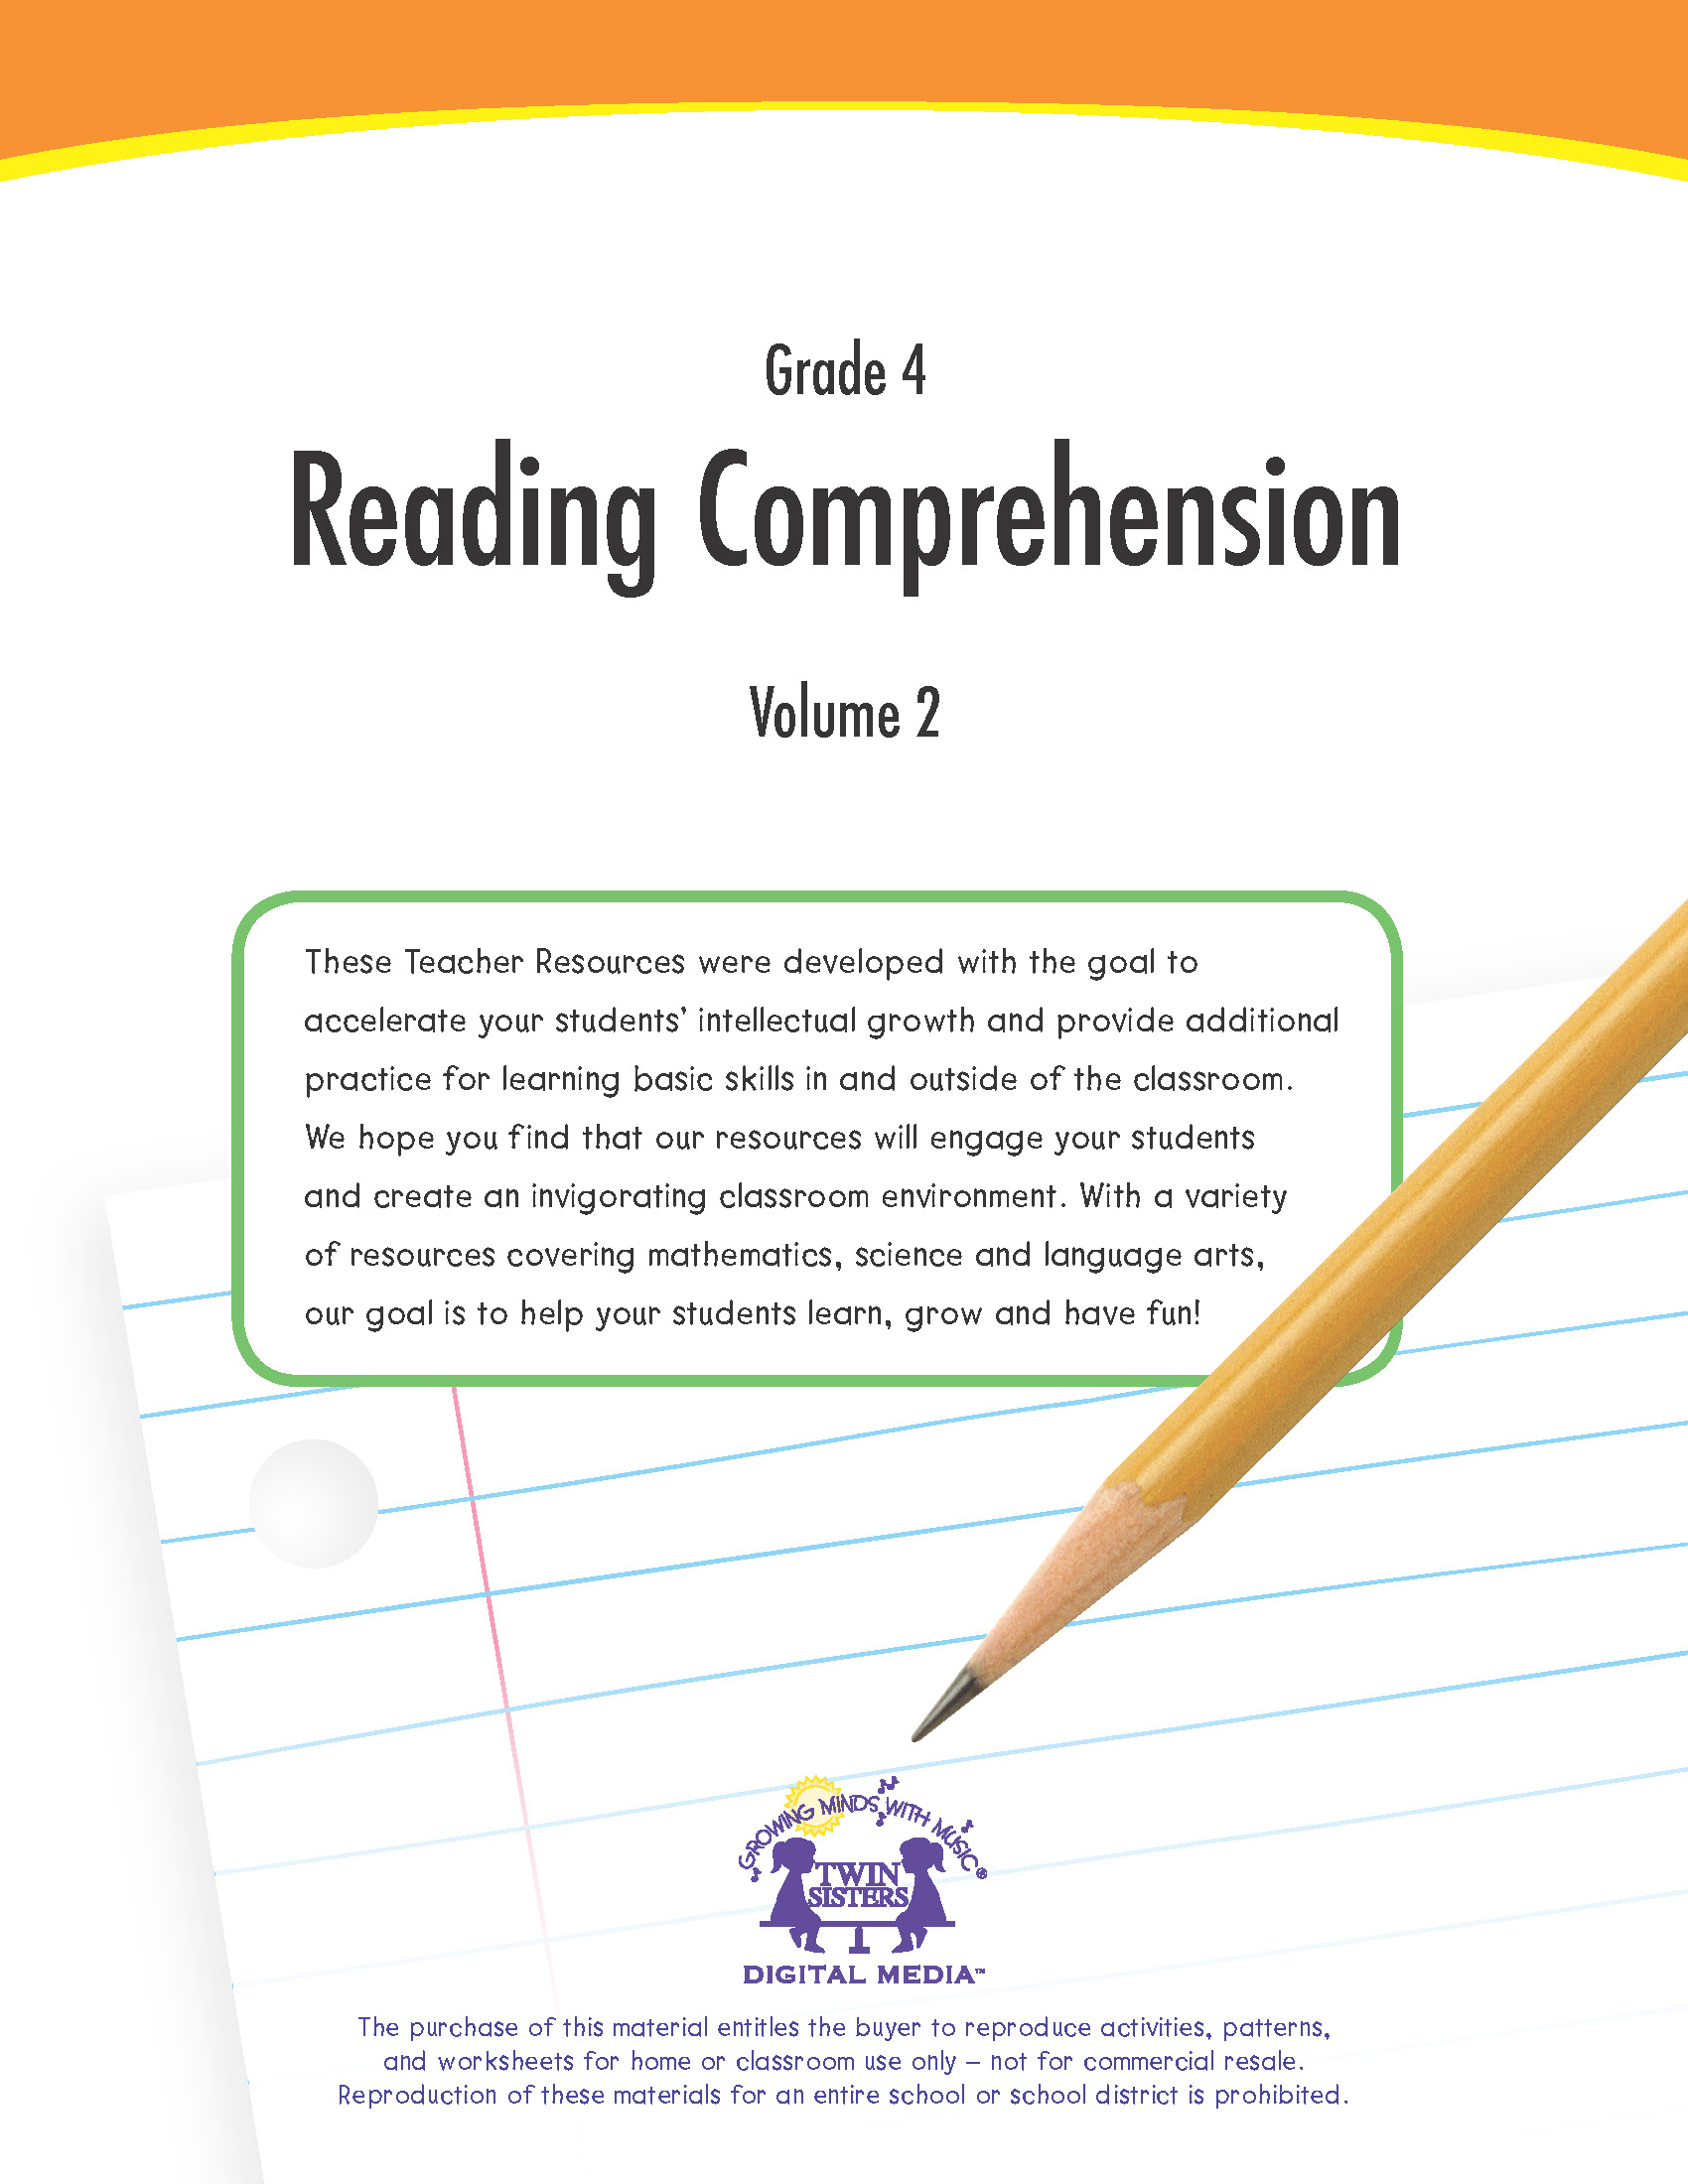 Grade 4 Reading Comprehension Volume 2